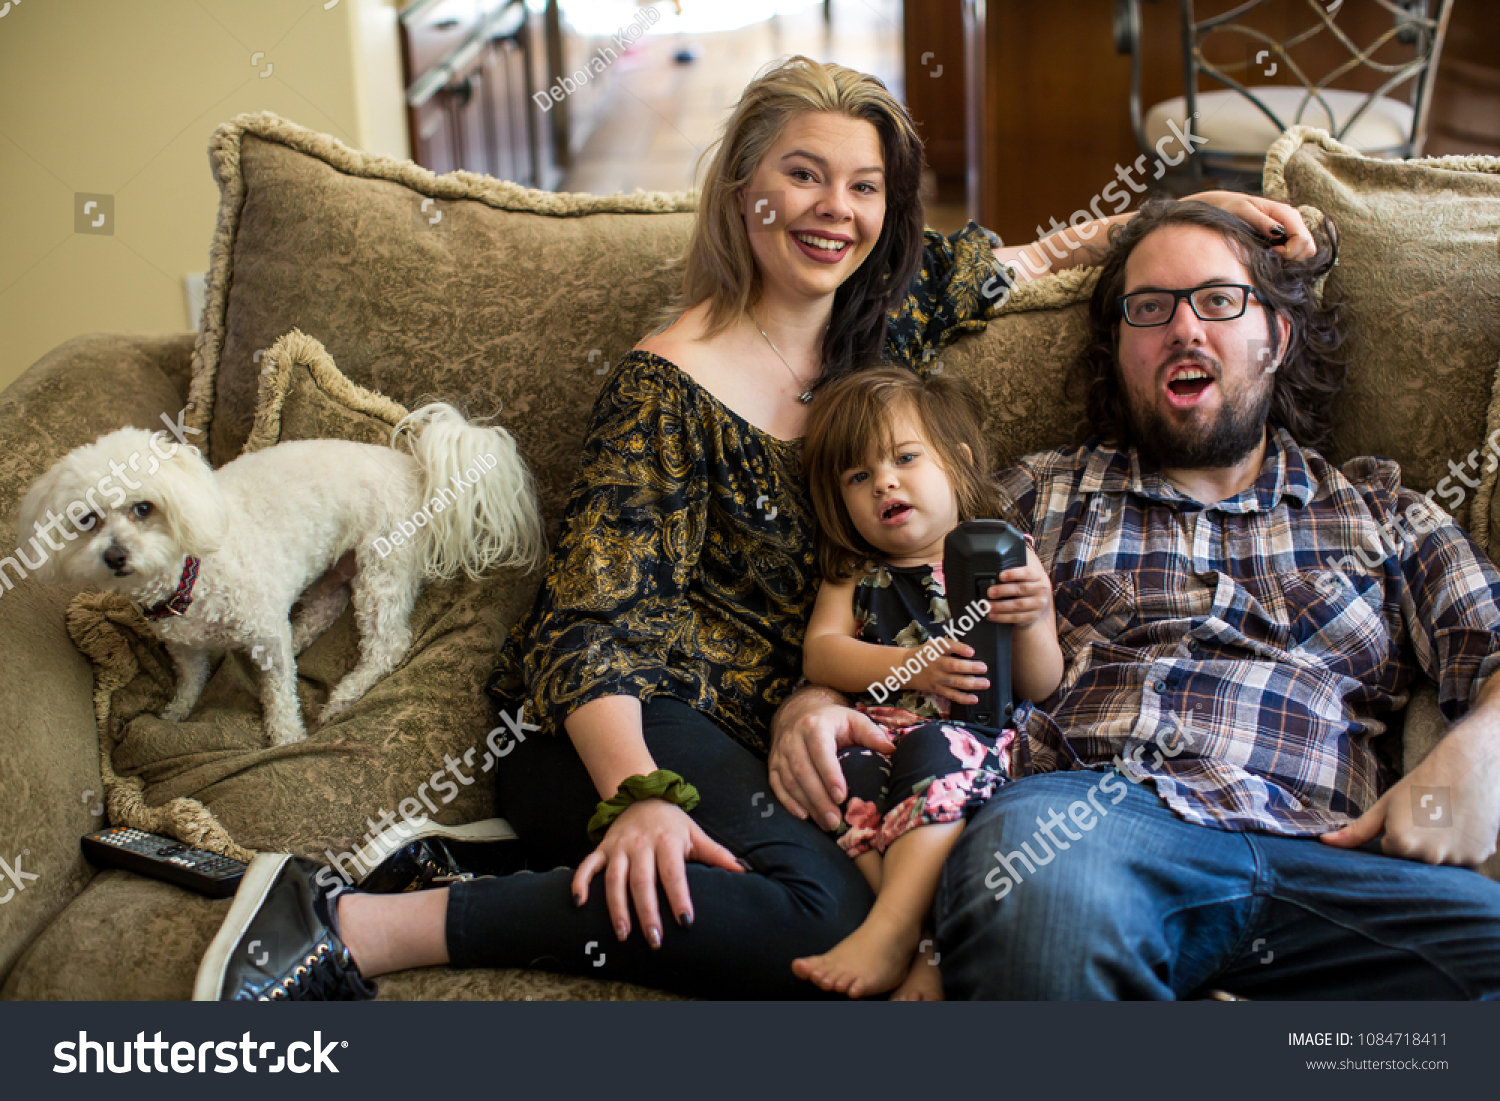 A Funny Family Portrait With Their Dog